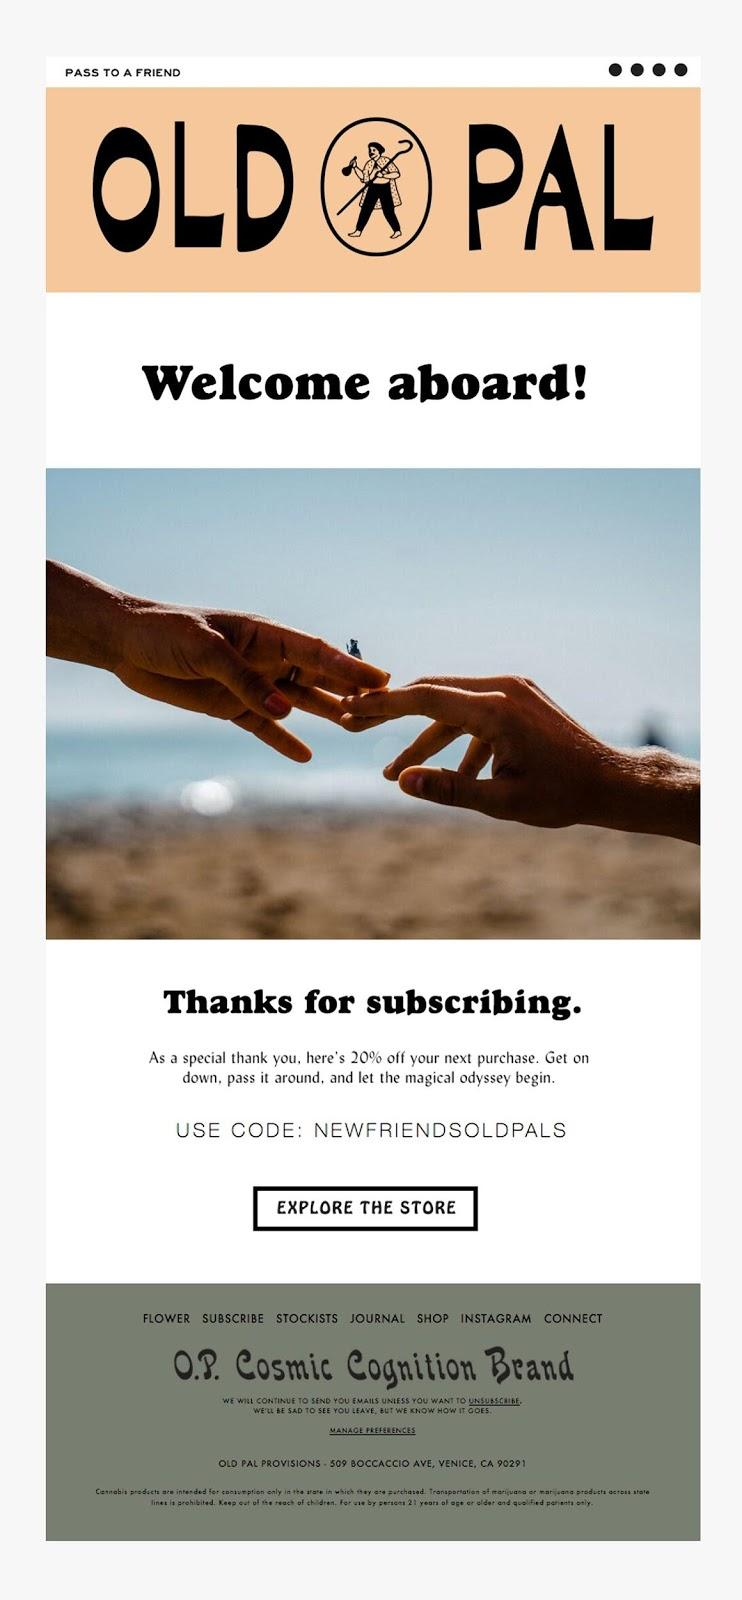 DO set triggers for automated marketing emails